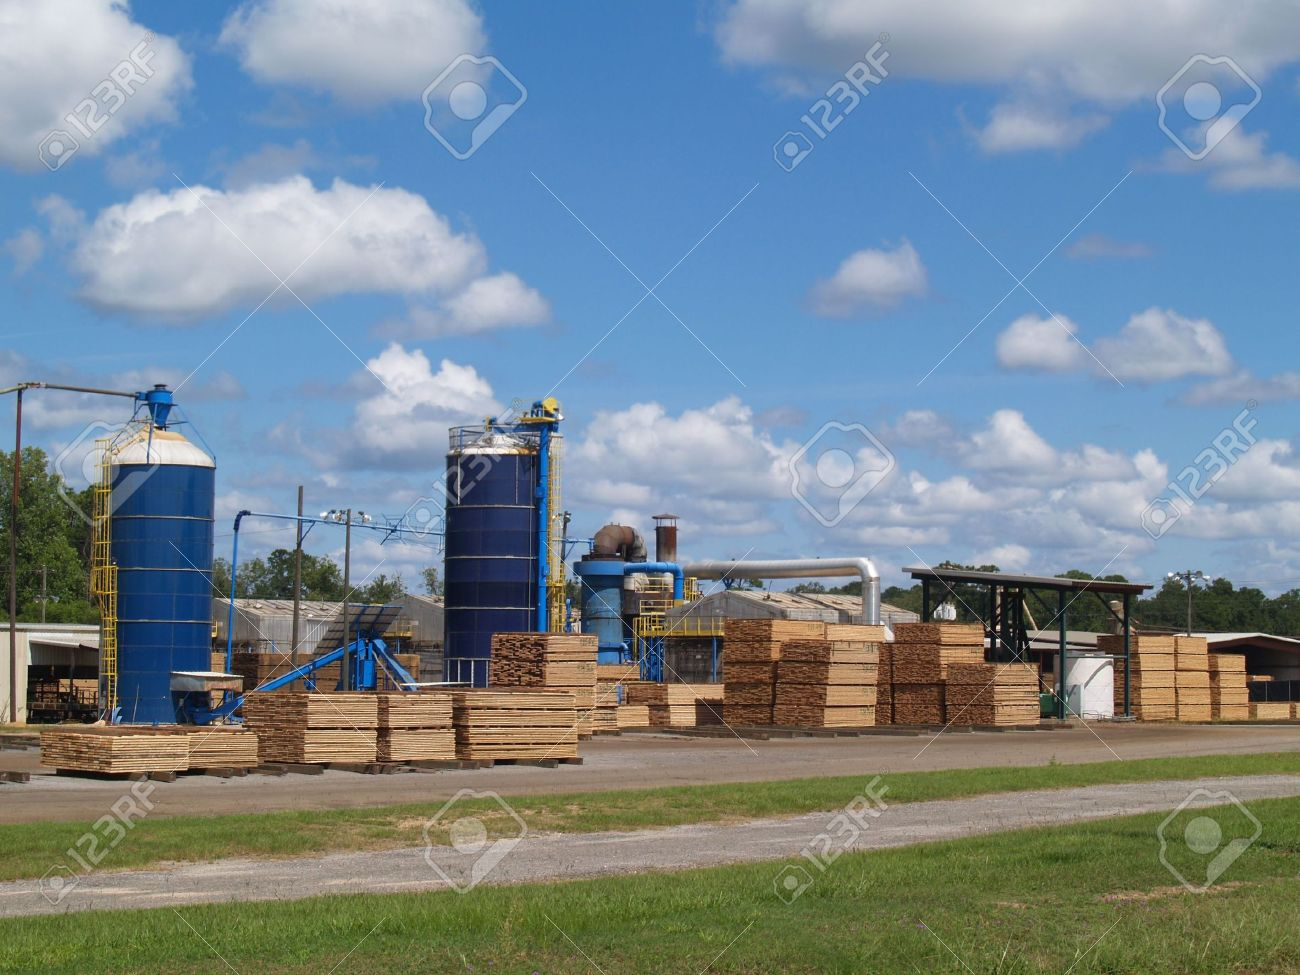 Outside view of a south Georgia lumber yard with blue silos and stacks of fresh cut green lumber curing in the sunshine. - 5608279